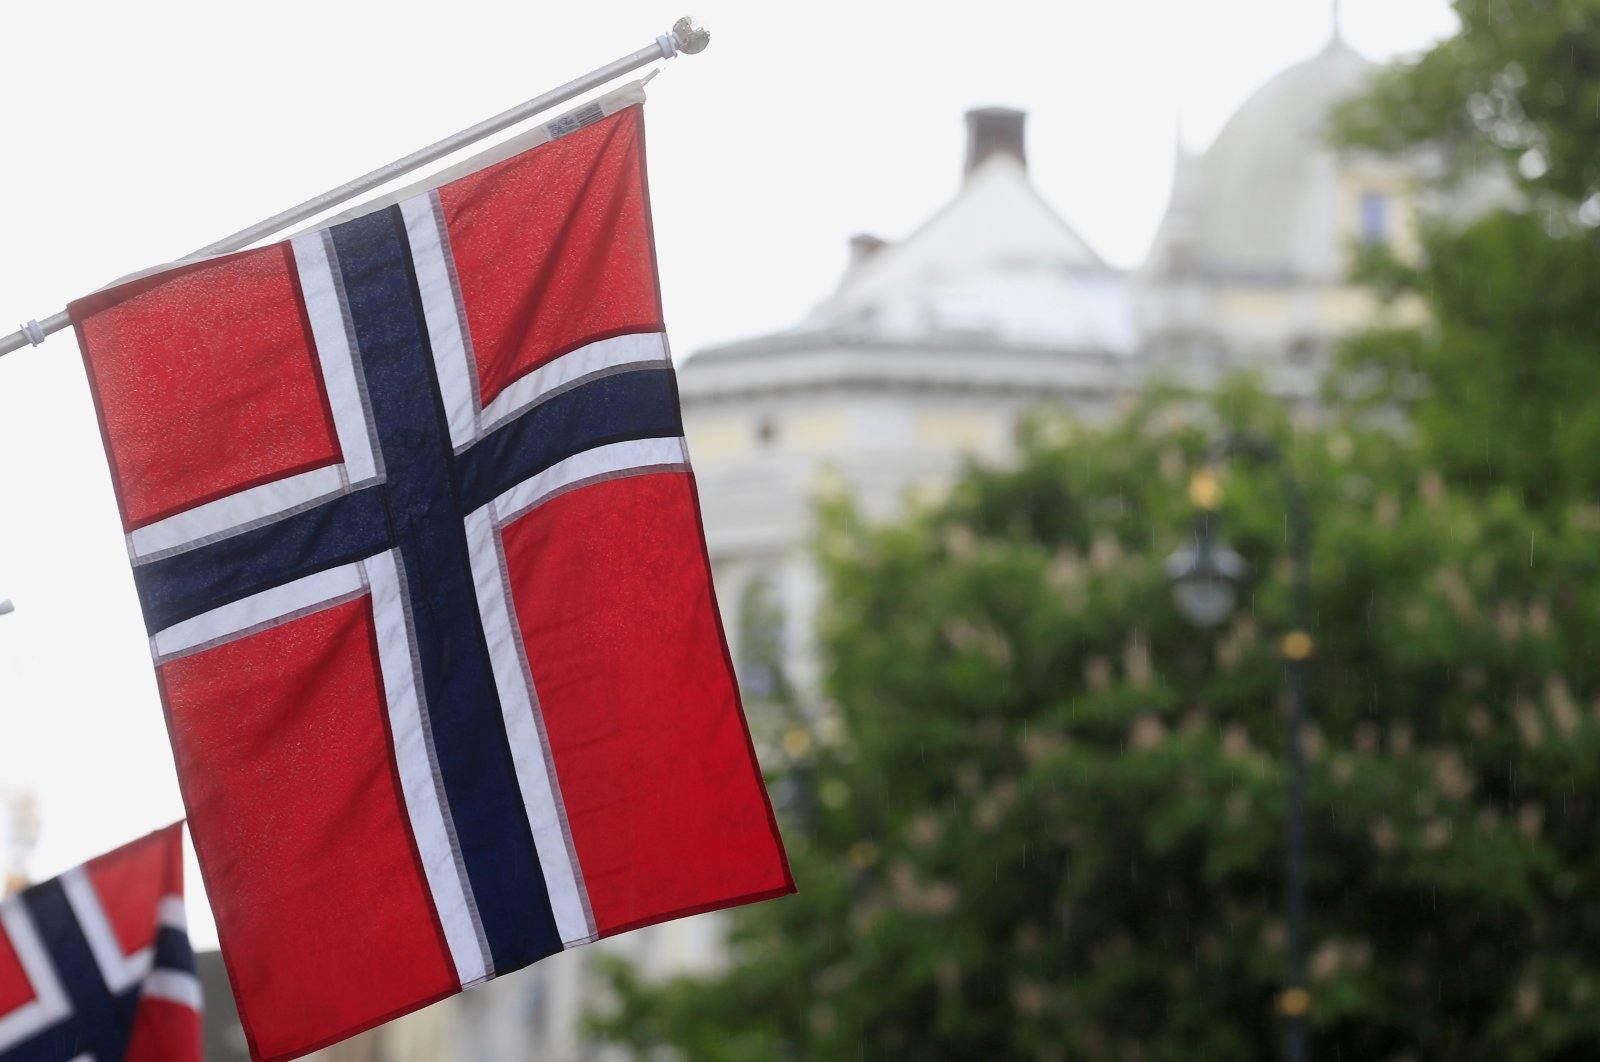 Norwegian flags flutter at Karl Johans street in Oslo, Norway, May 31, 2017. (Reuters Photo)